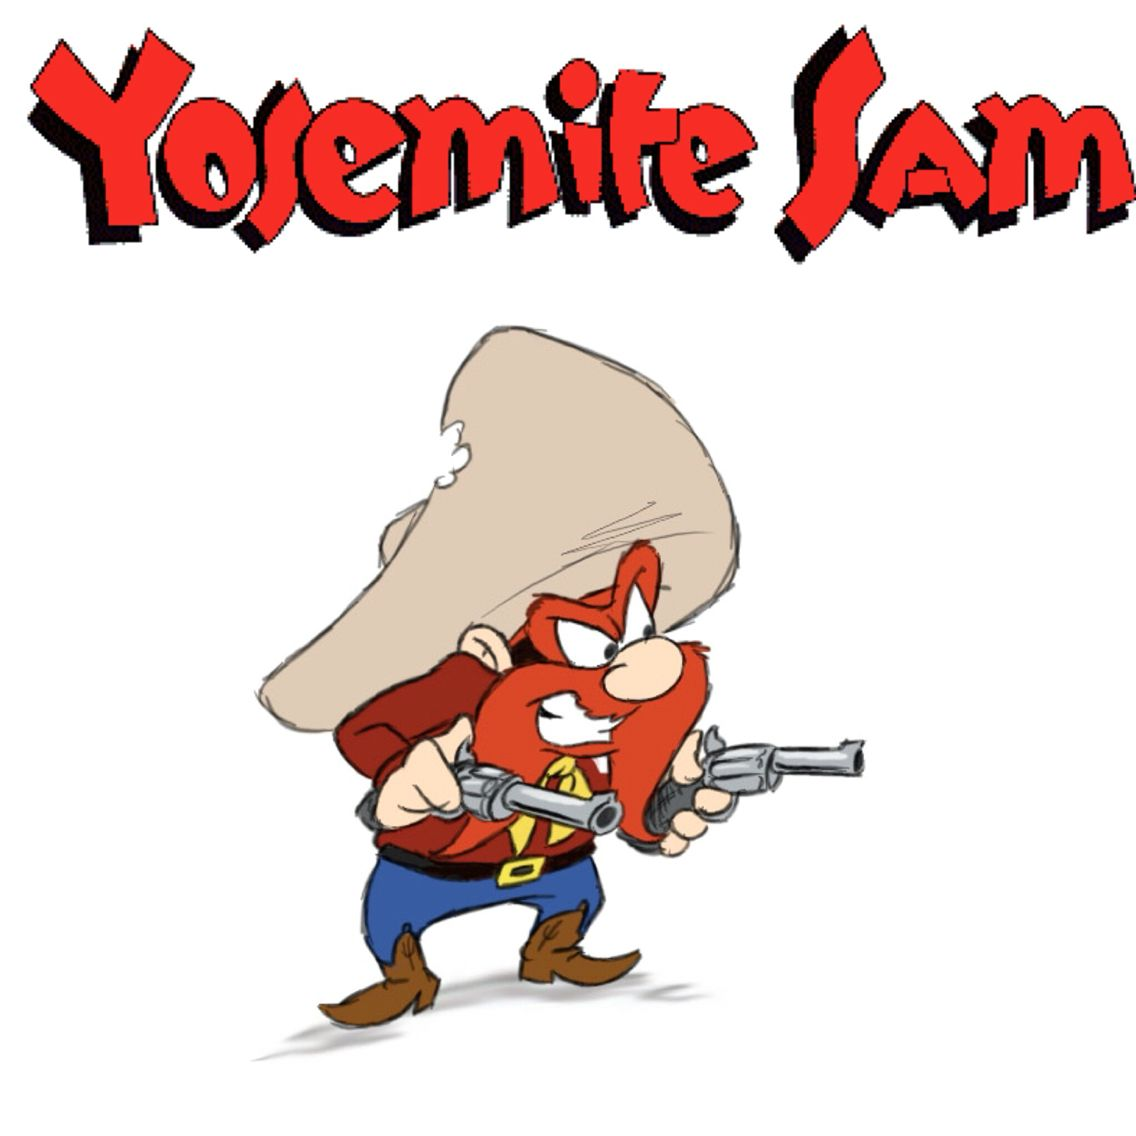 1136x1136 Yosemite Sam Memories Yosemite Sam, Looney Tunes